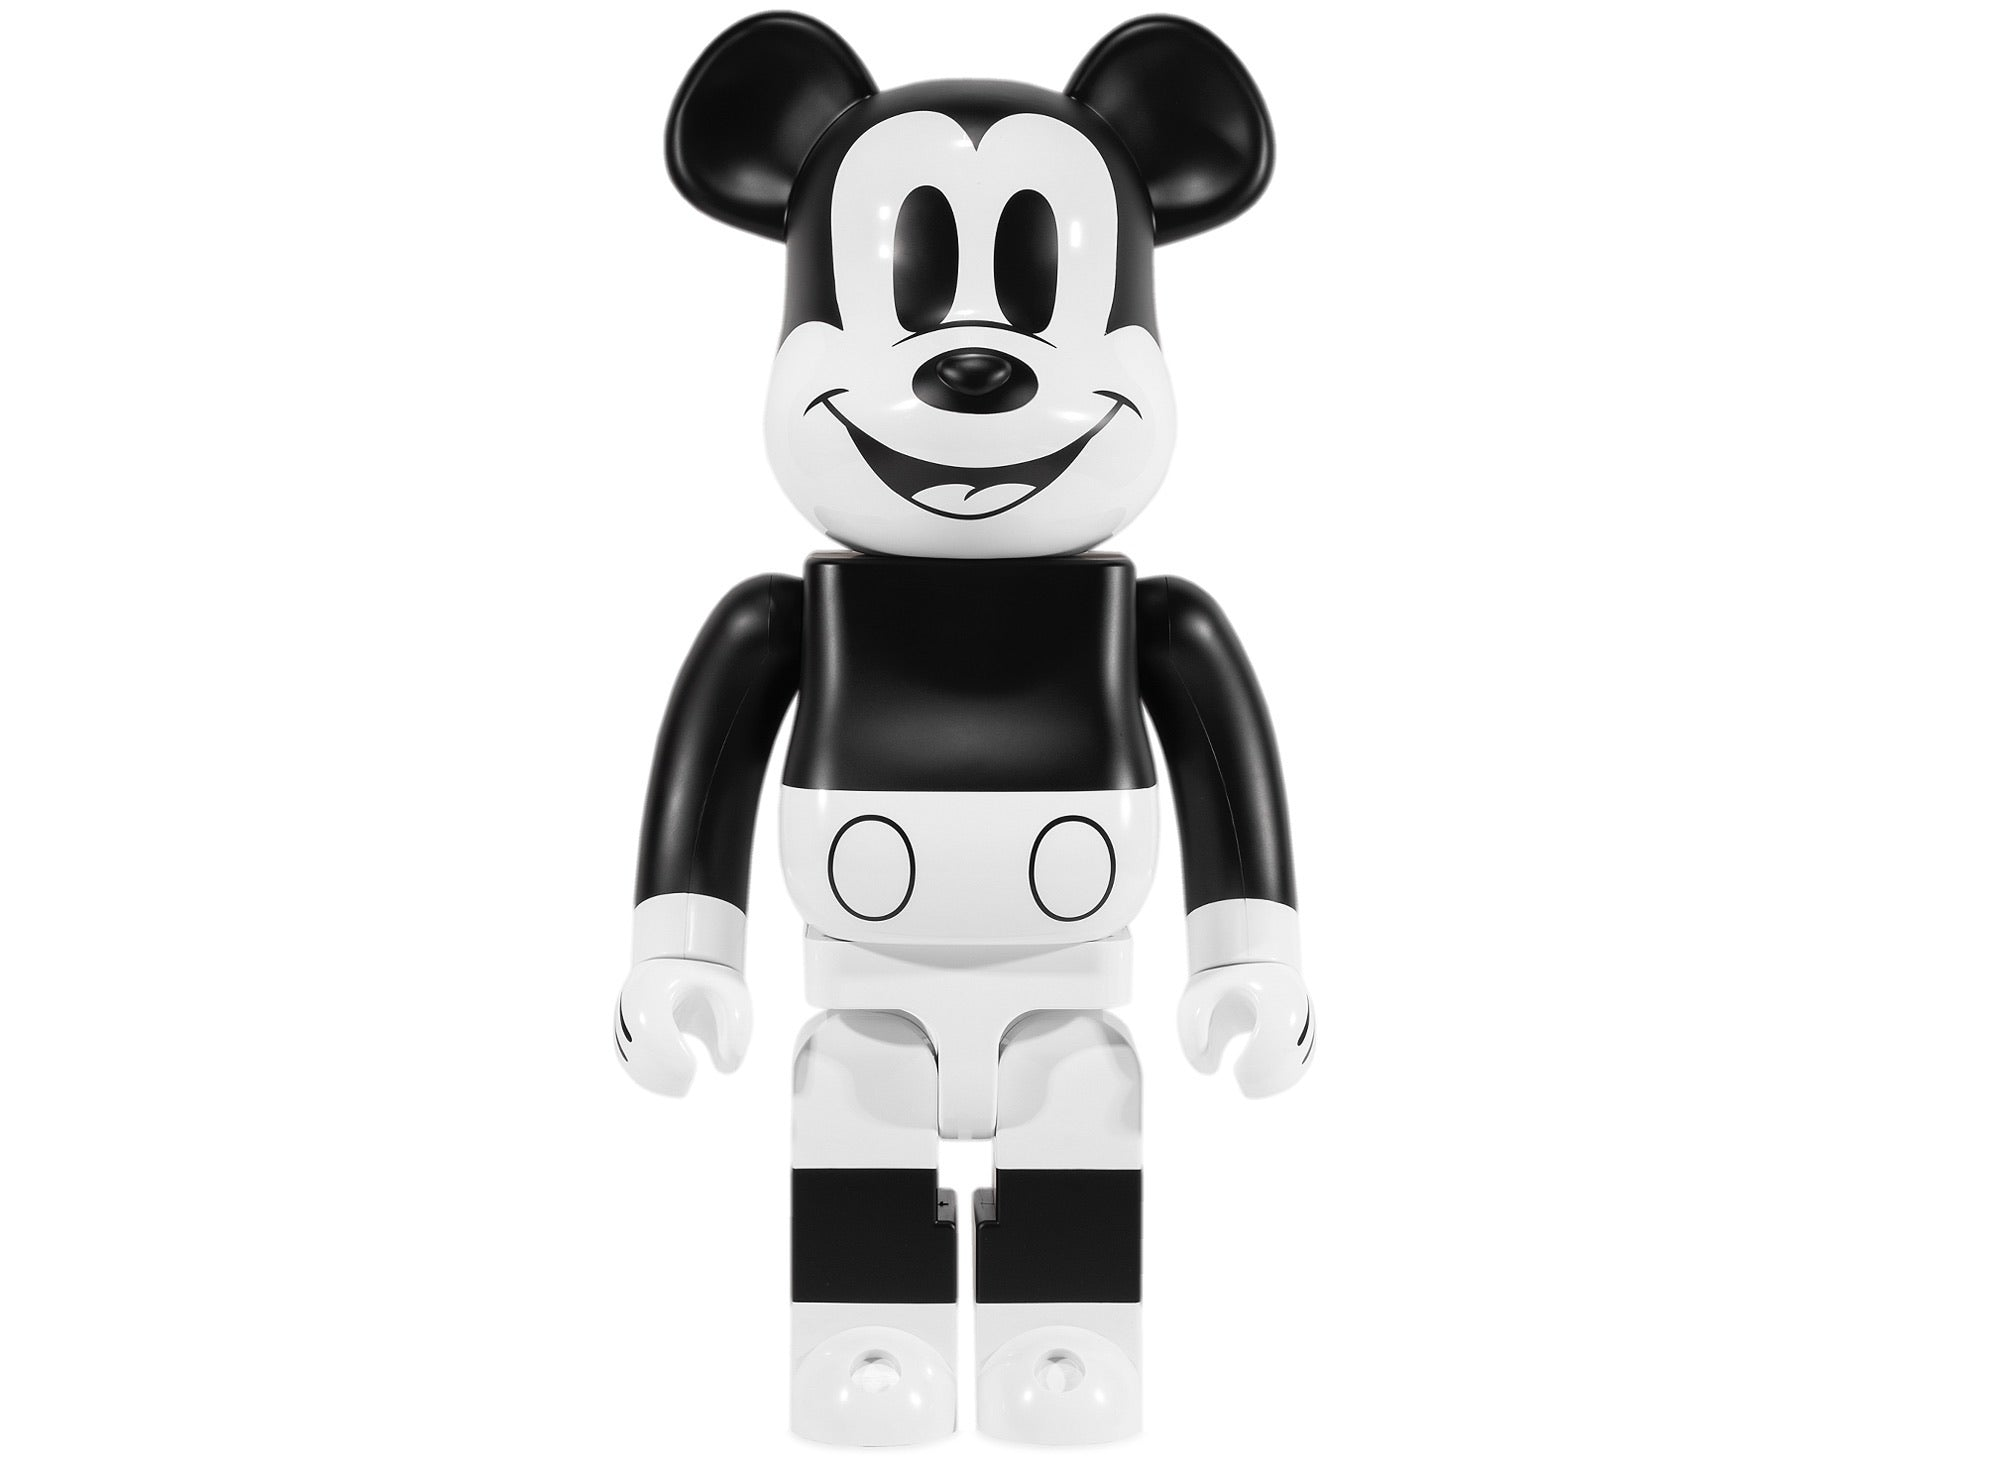 Medicom Toy BE@RBRICK Mickey Mouse (B&W 2020 Ver.) 1000% xld